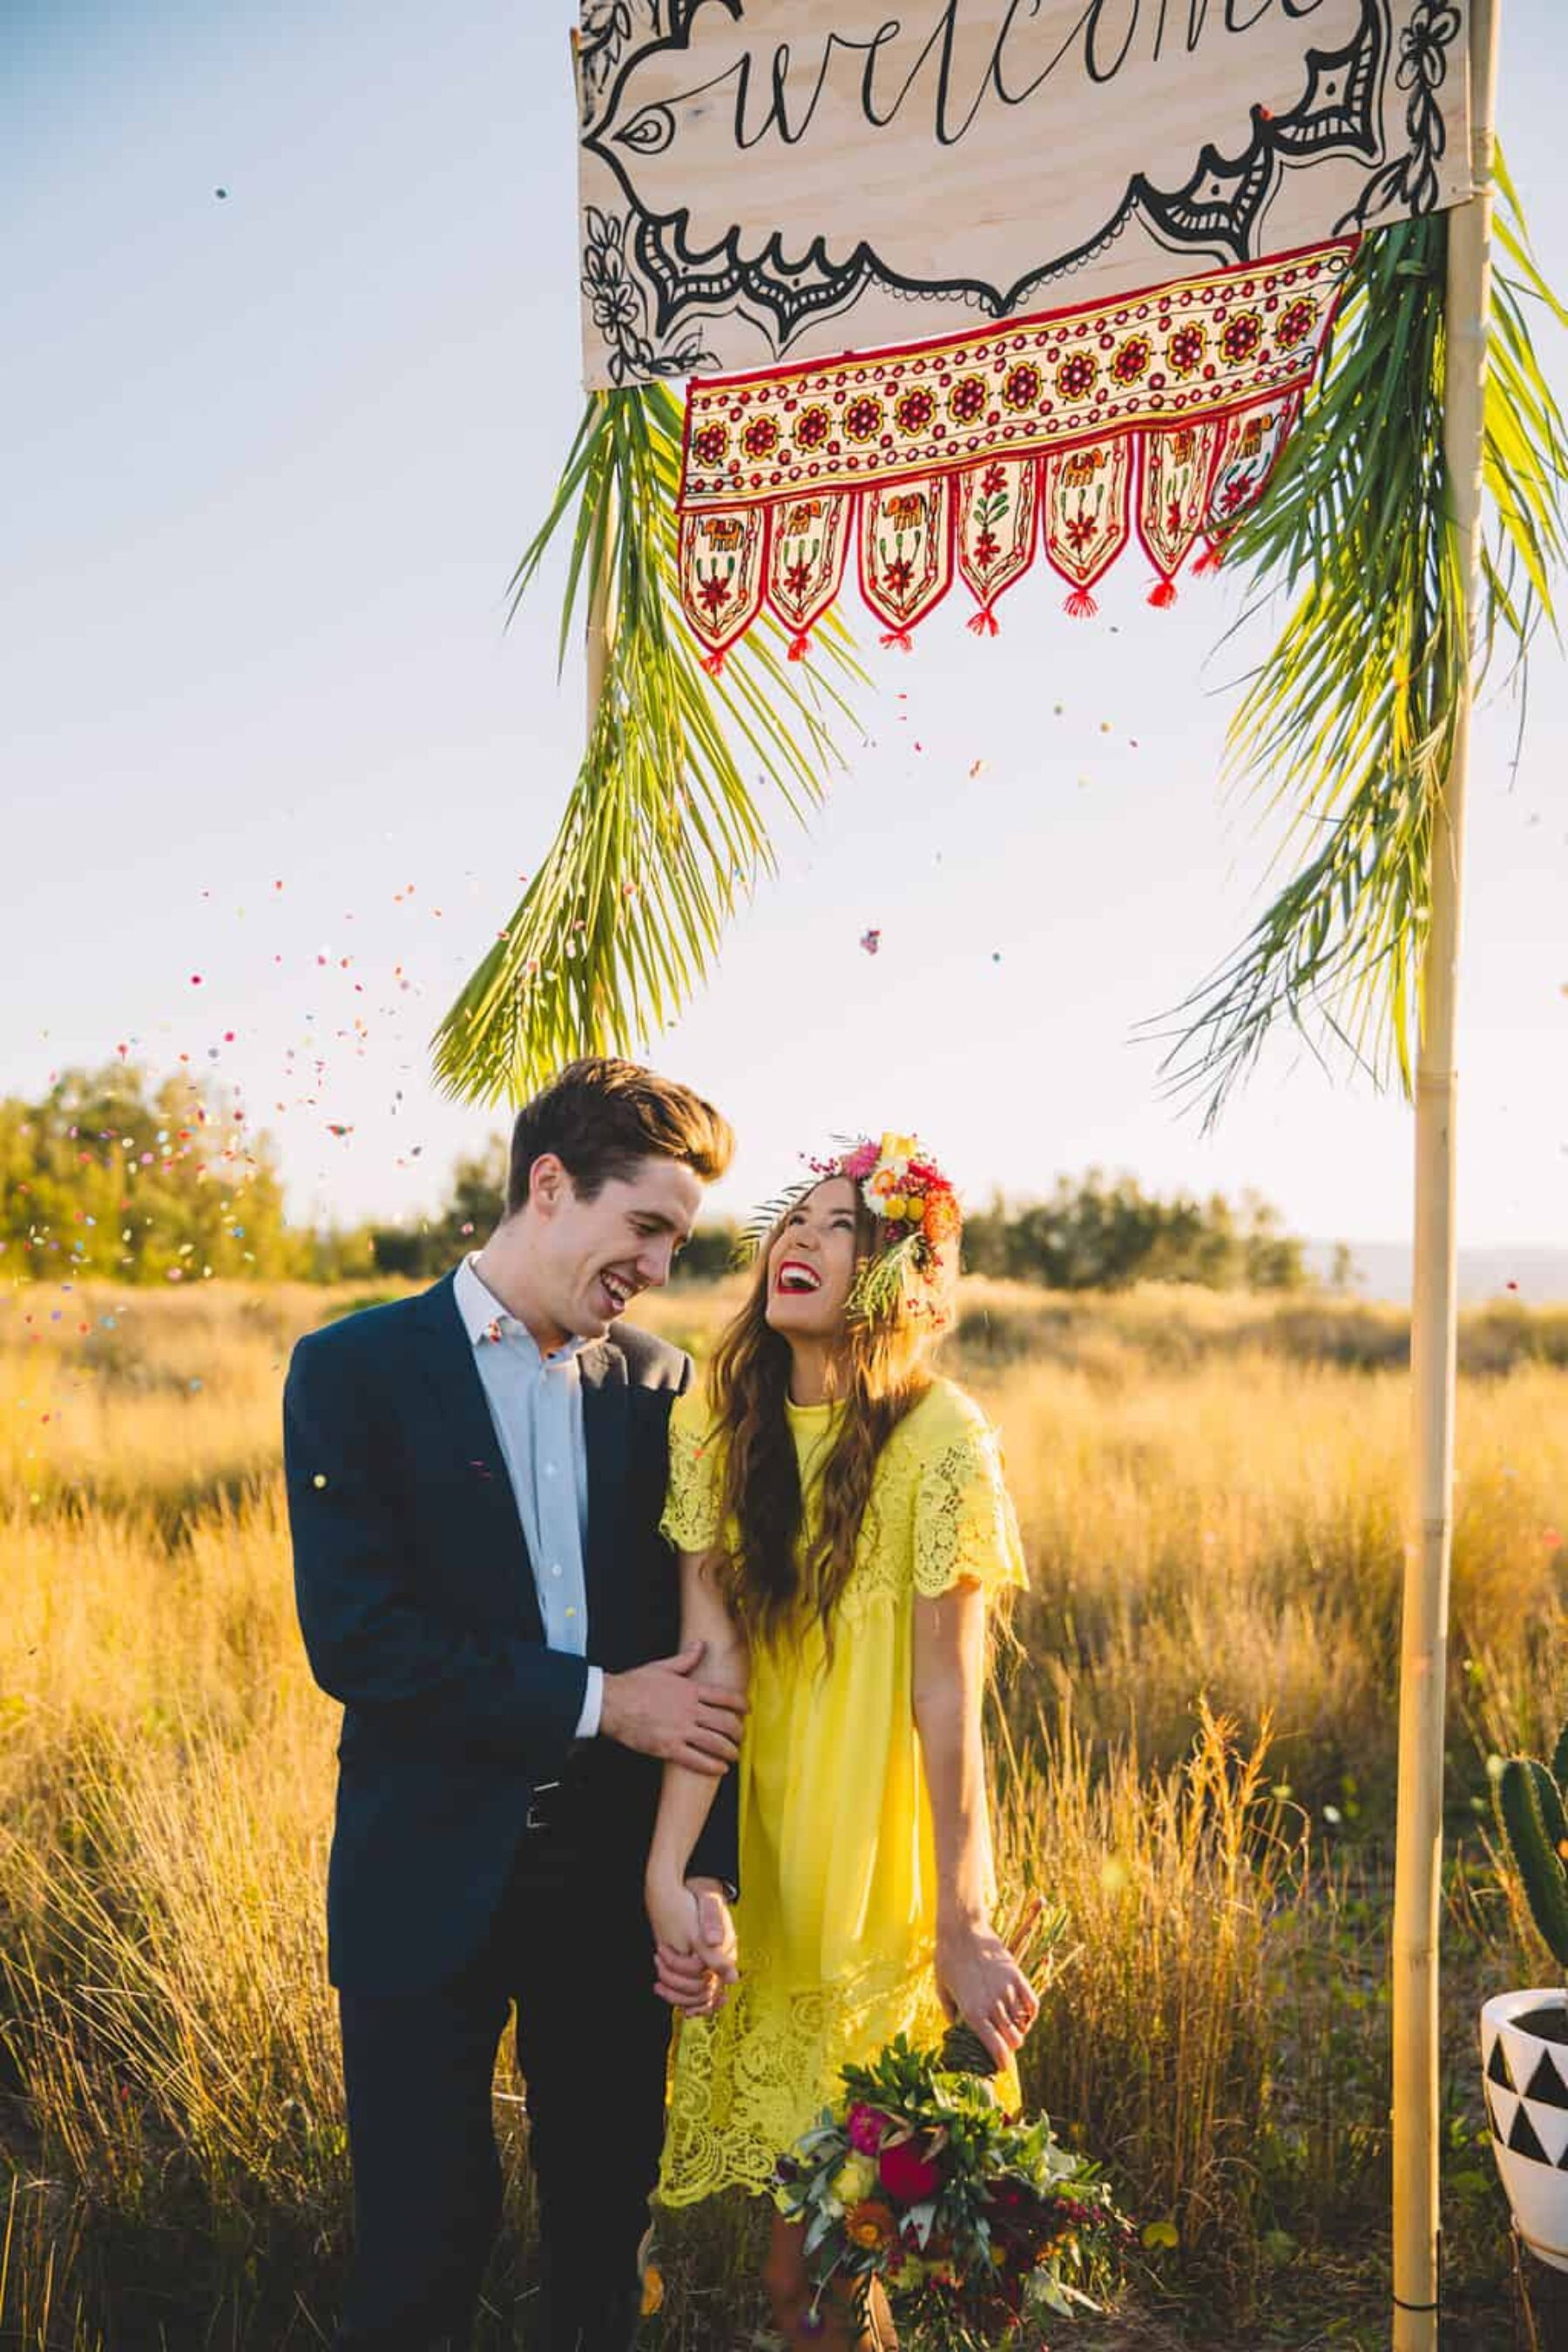 Vibrant Mexican fiesta wedding inspiration